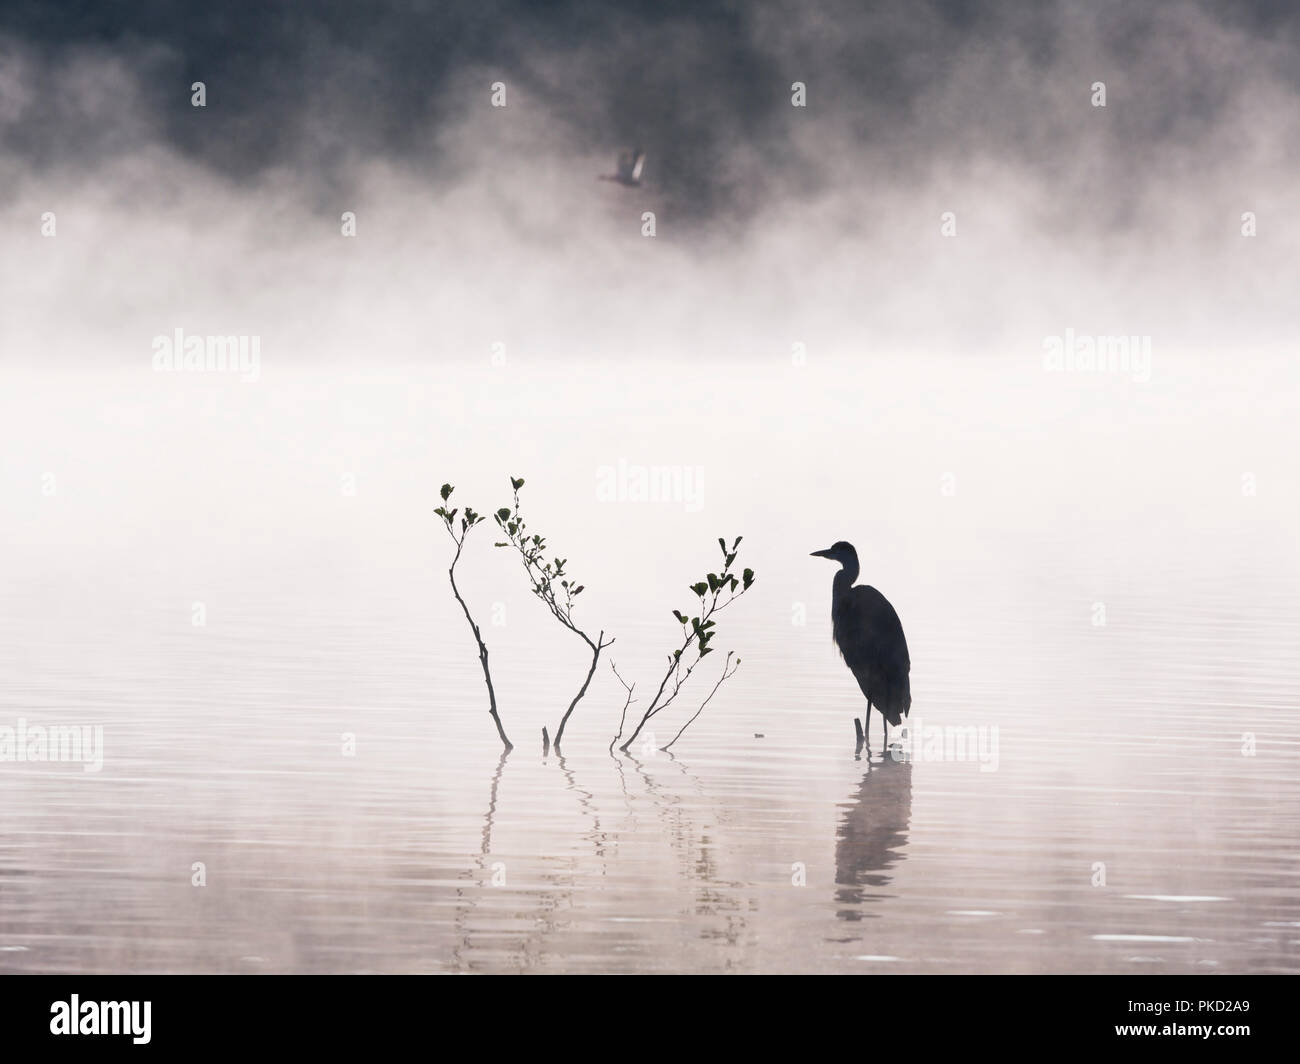 Grey heron gazing out over a misty lake with a mallard duck flying past - Stock Image